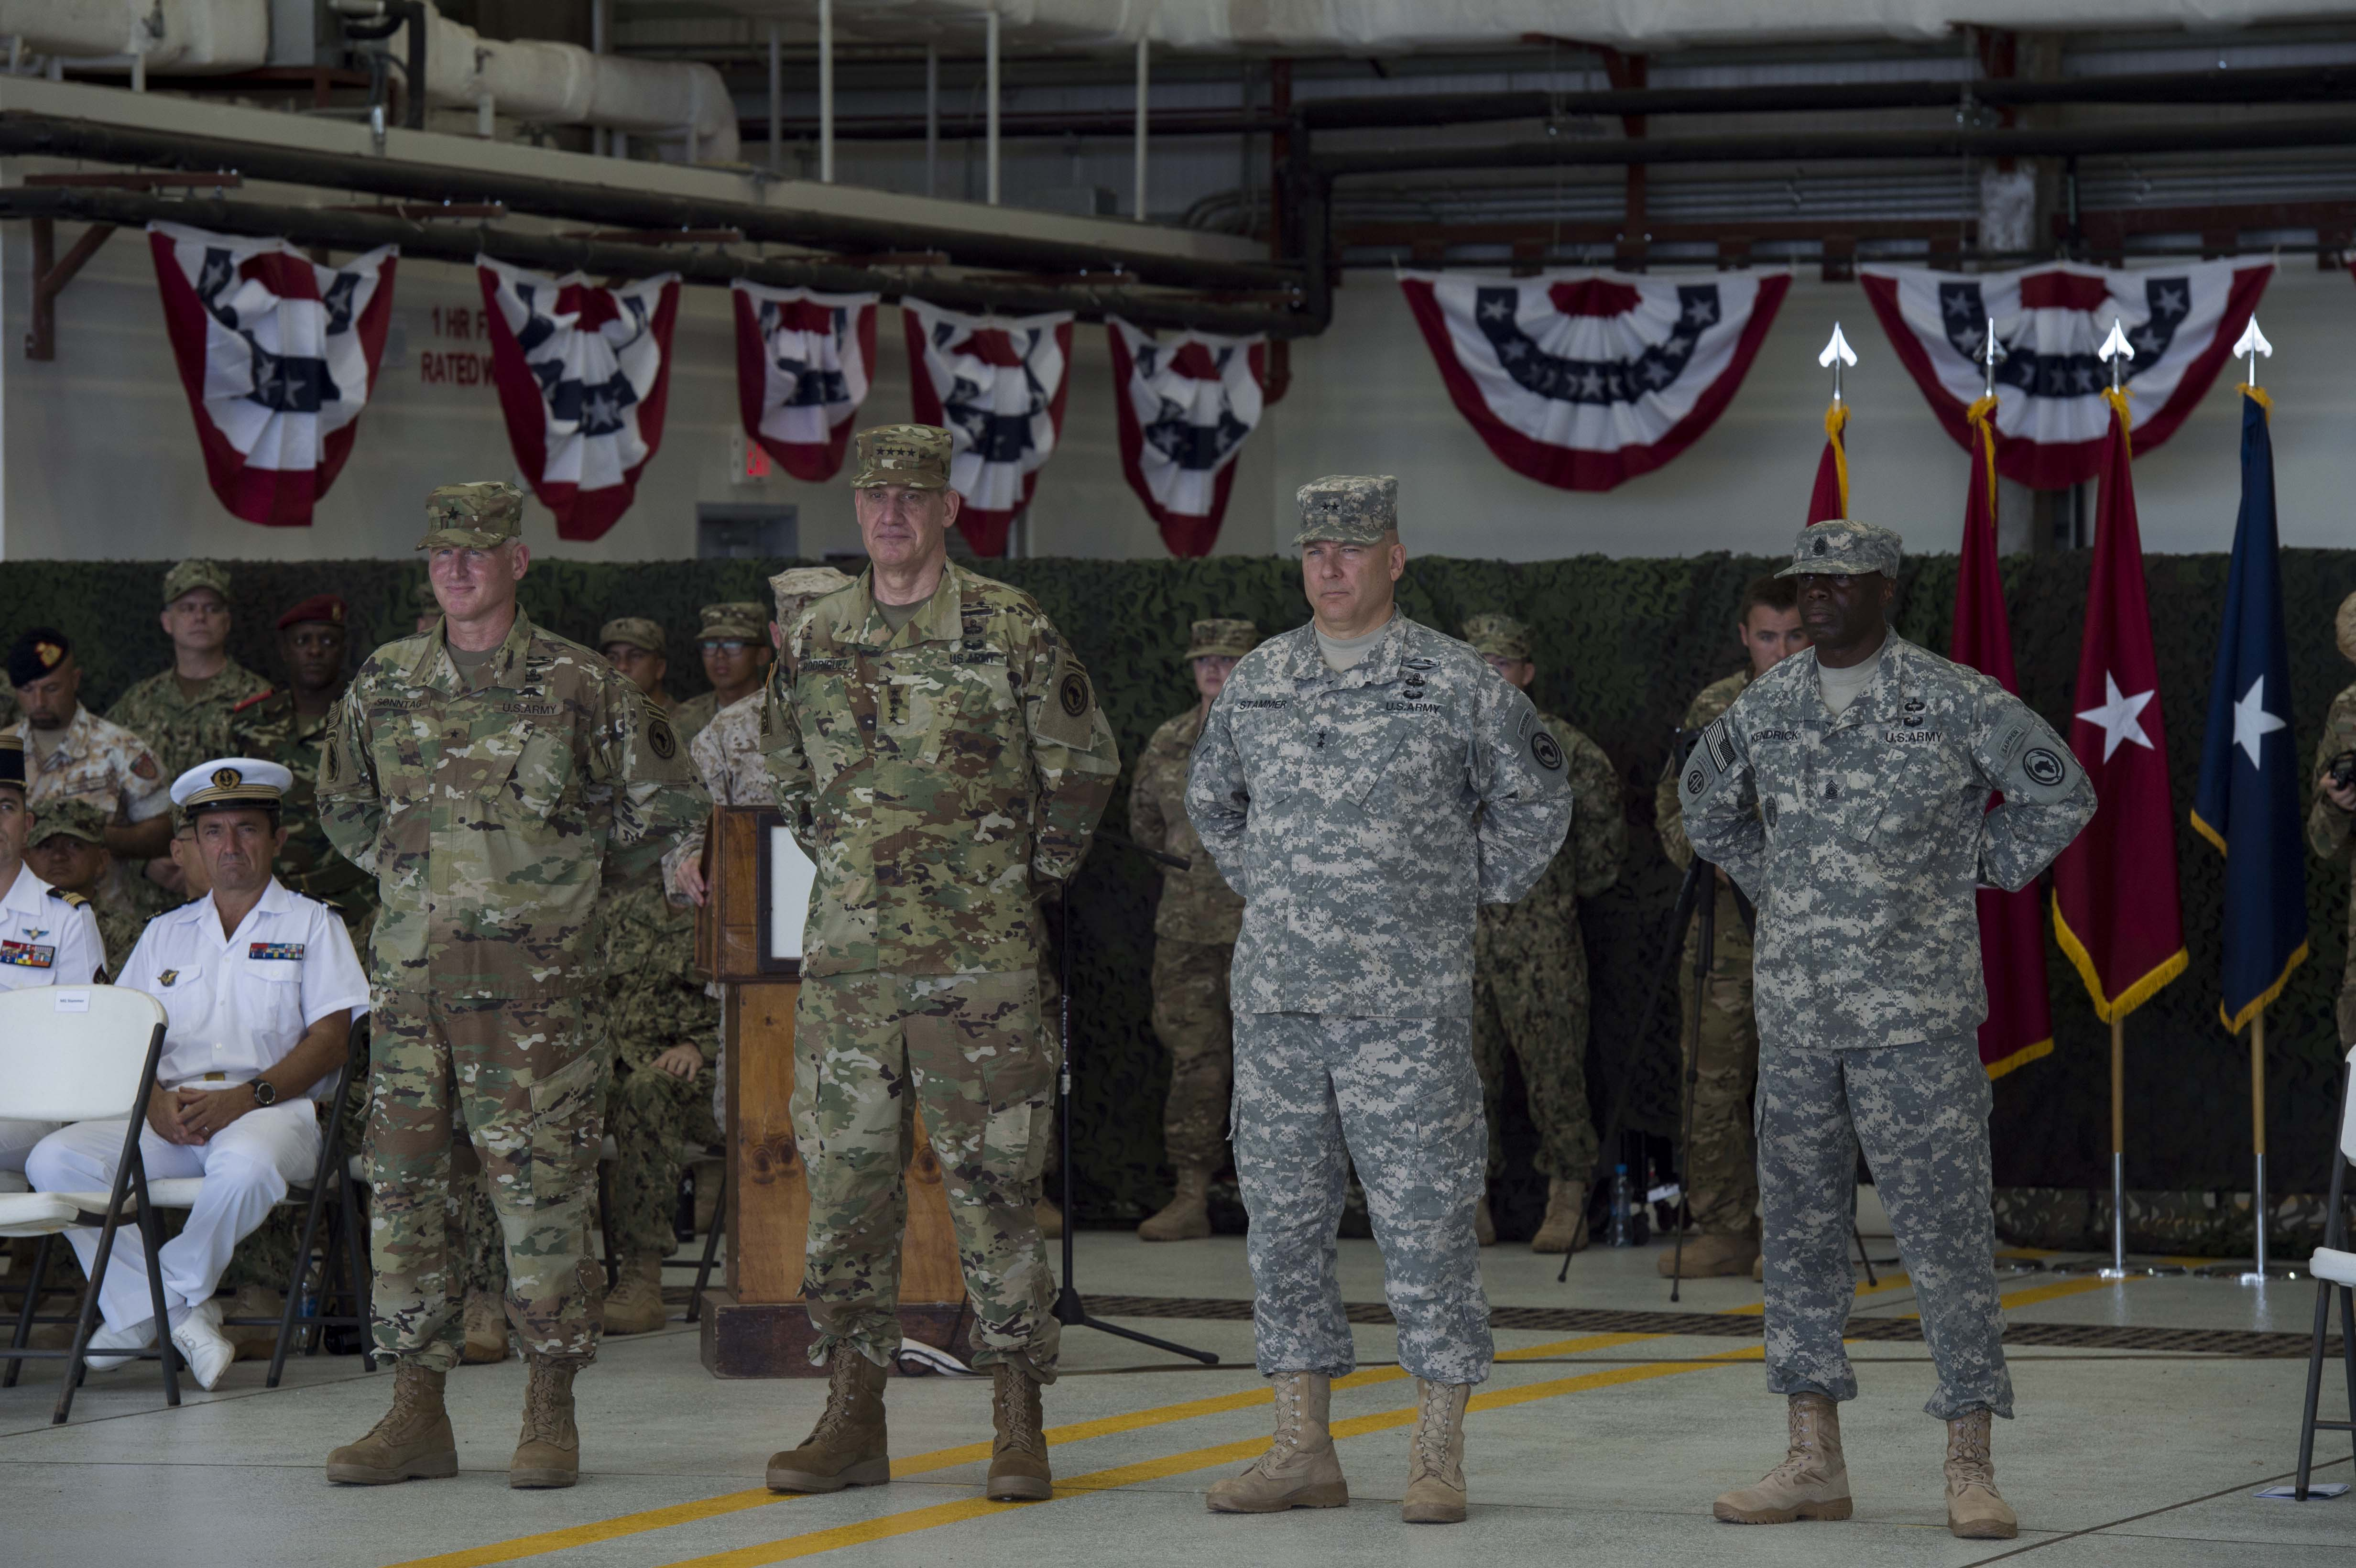 Members of Combined Joint Task Force-Horn of Africa stand at attention as responsibilities of the unit are transferred to a new commander during the CJTF-HOA change of command ceremony April 13, 2016, at Camp Lemonnier, Djibouti. The ceremony also featured a transfer of responsibility during which U.S. Navy Command Master Chief Geoffrey P. Steffee assumed the role of CTJF-HOA command senior enlisted leader from U.S. Army Command Sgt. Maj Butler Kendrick Jr. (U.S. Air Force photo by Staff Sgt. Eric Summers Jr.)